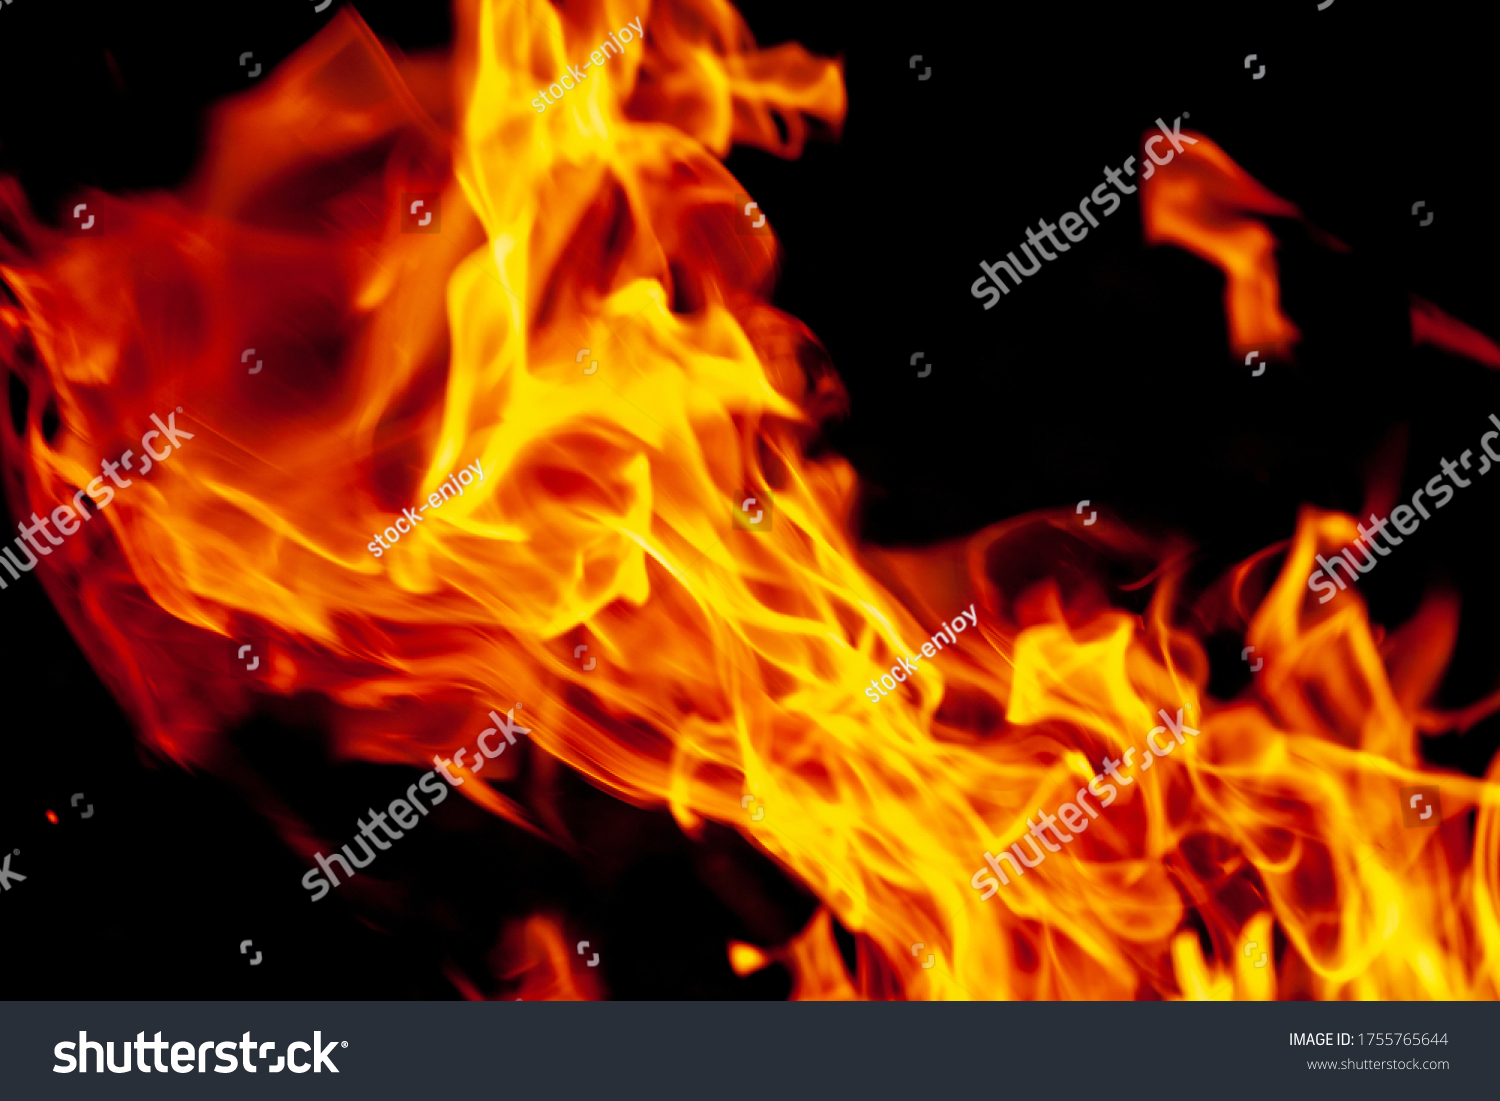 stock-photo-fire-background-with-bright-